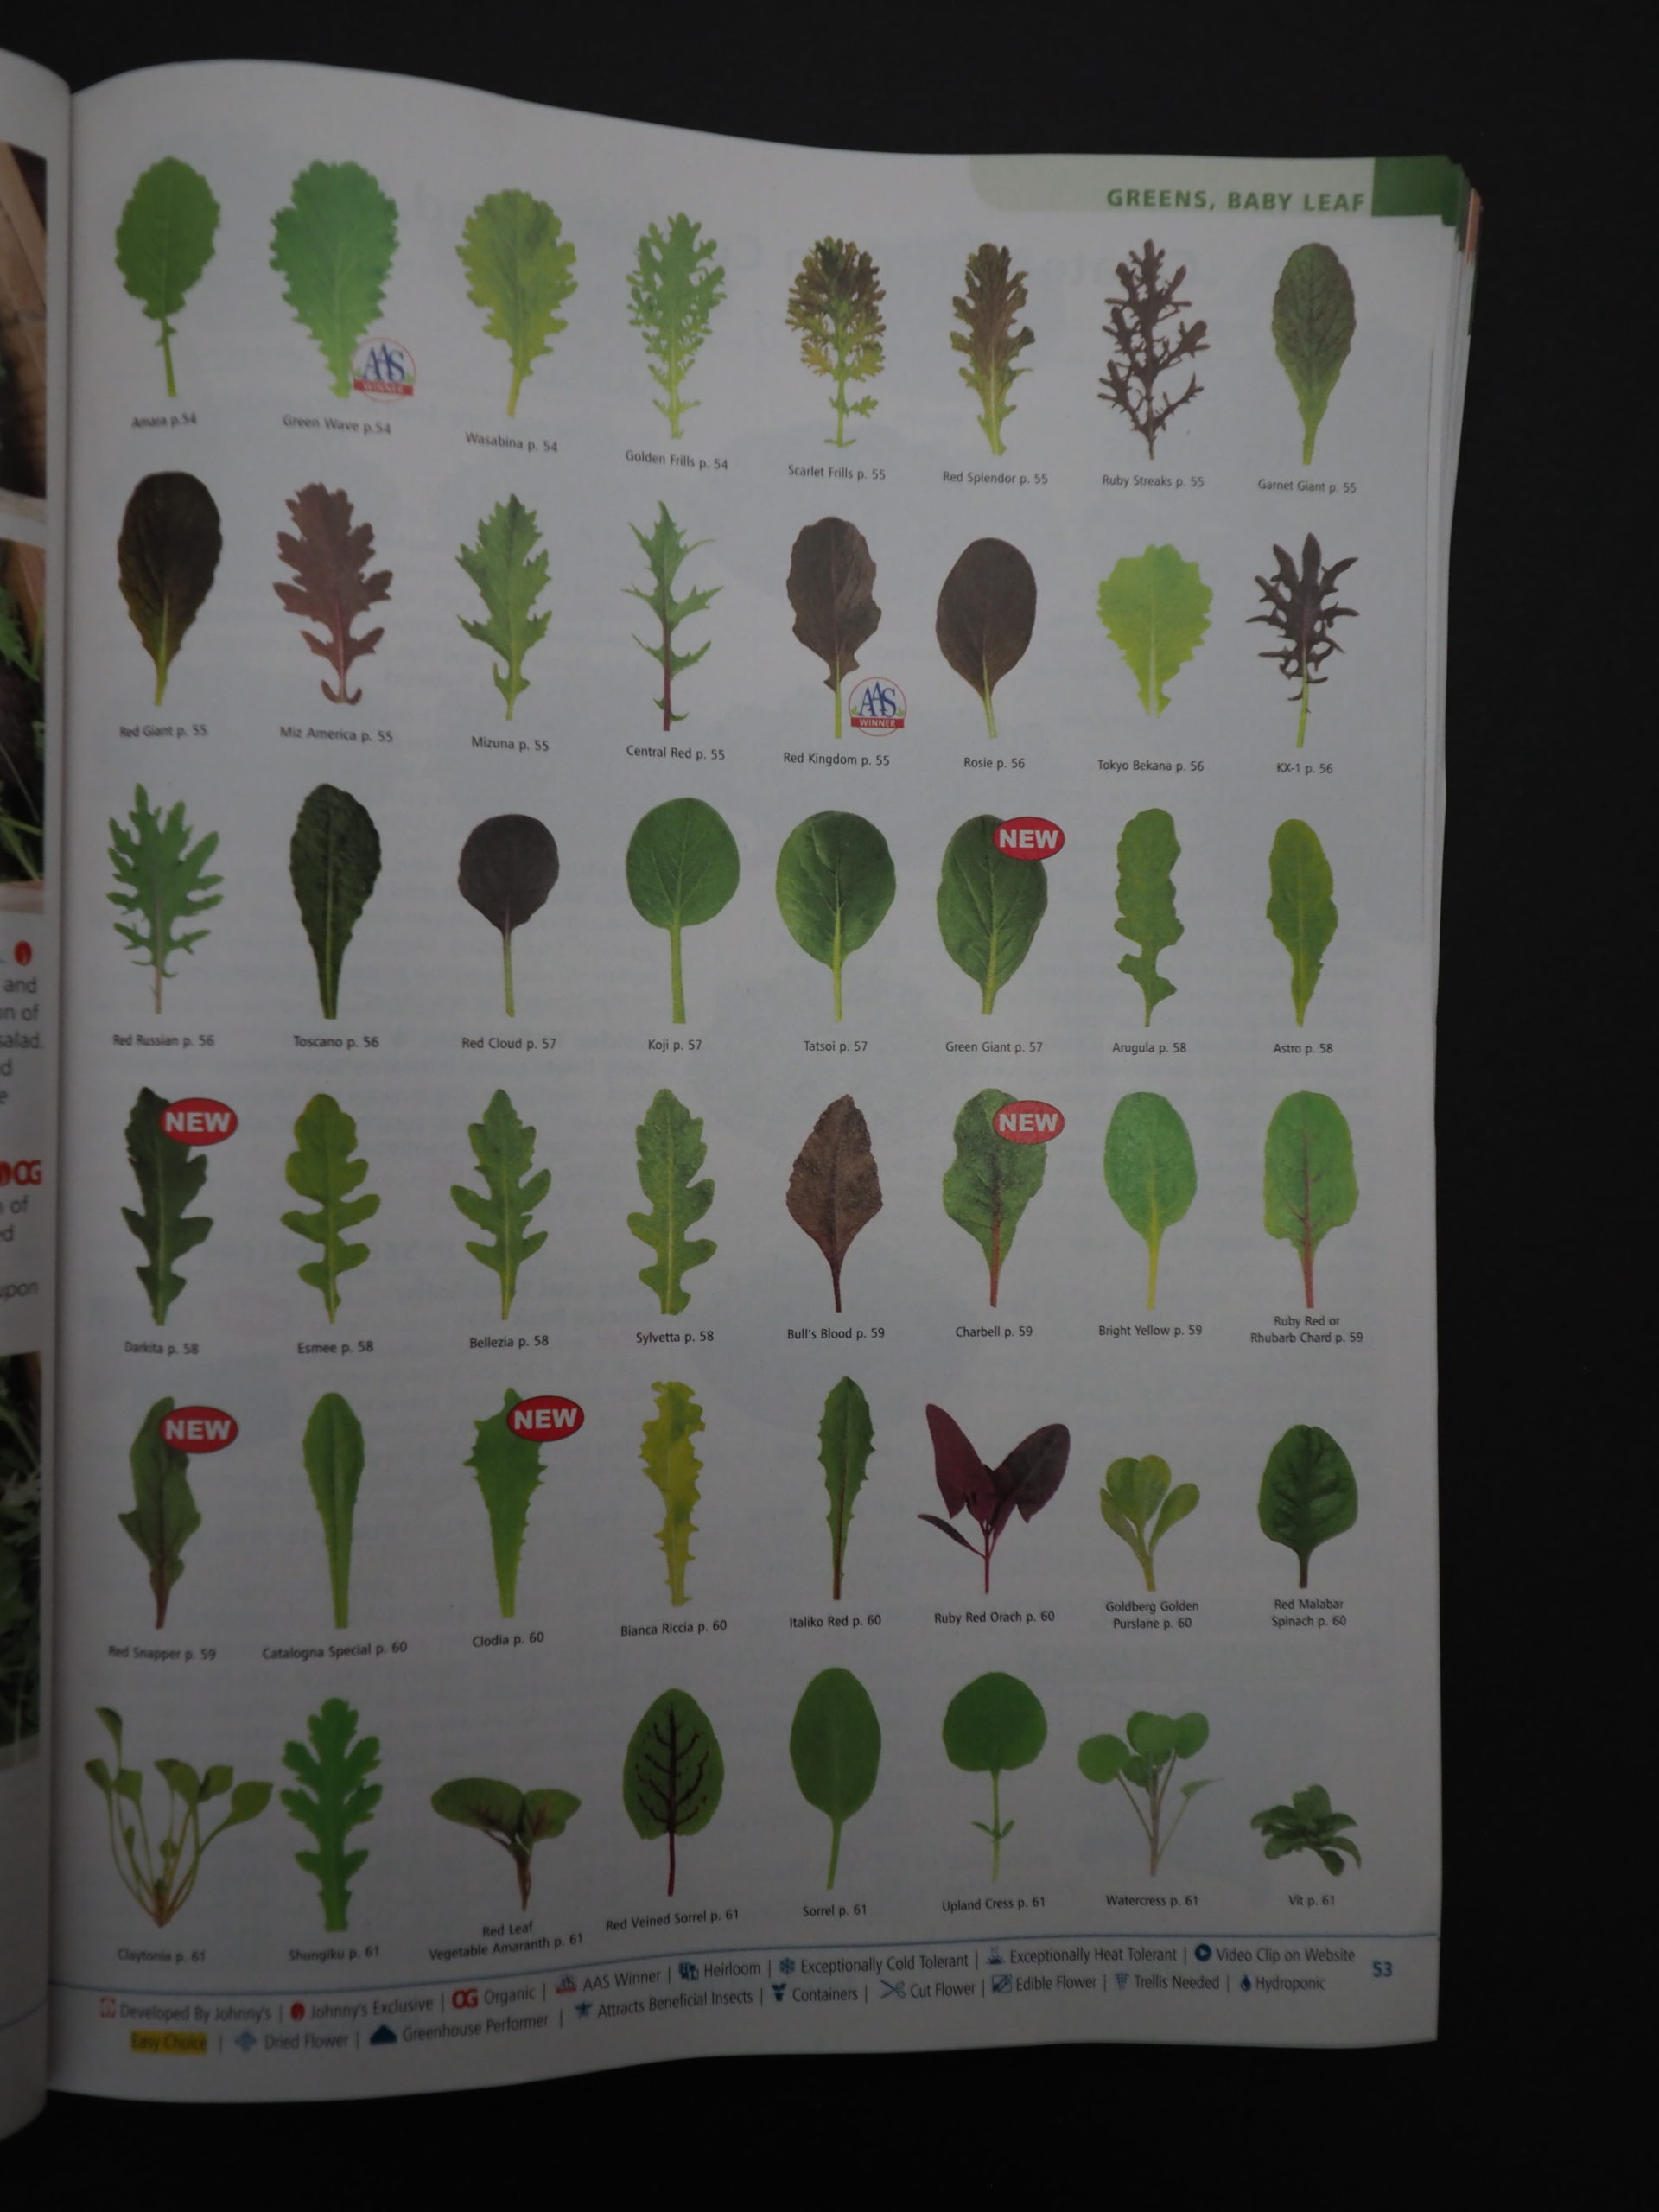 There are dozens and dozens of leafy greens to pick from for your salad garden. On this page, you can see color, shape and texture for nearly 50 varieties and there are many more in the